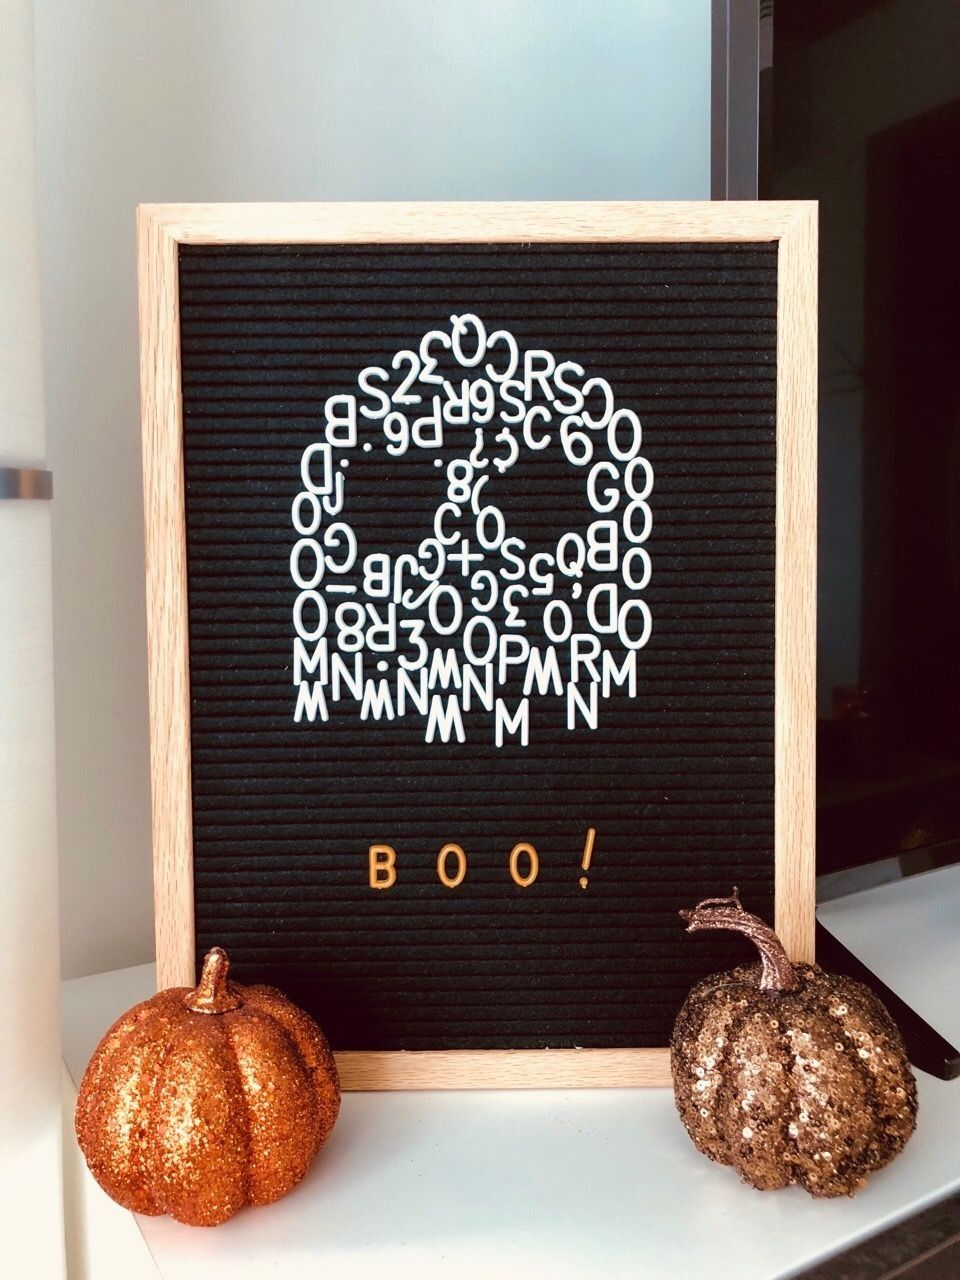 Boo Ghost Halloween Letter Board (With images) Halloween